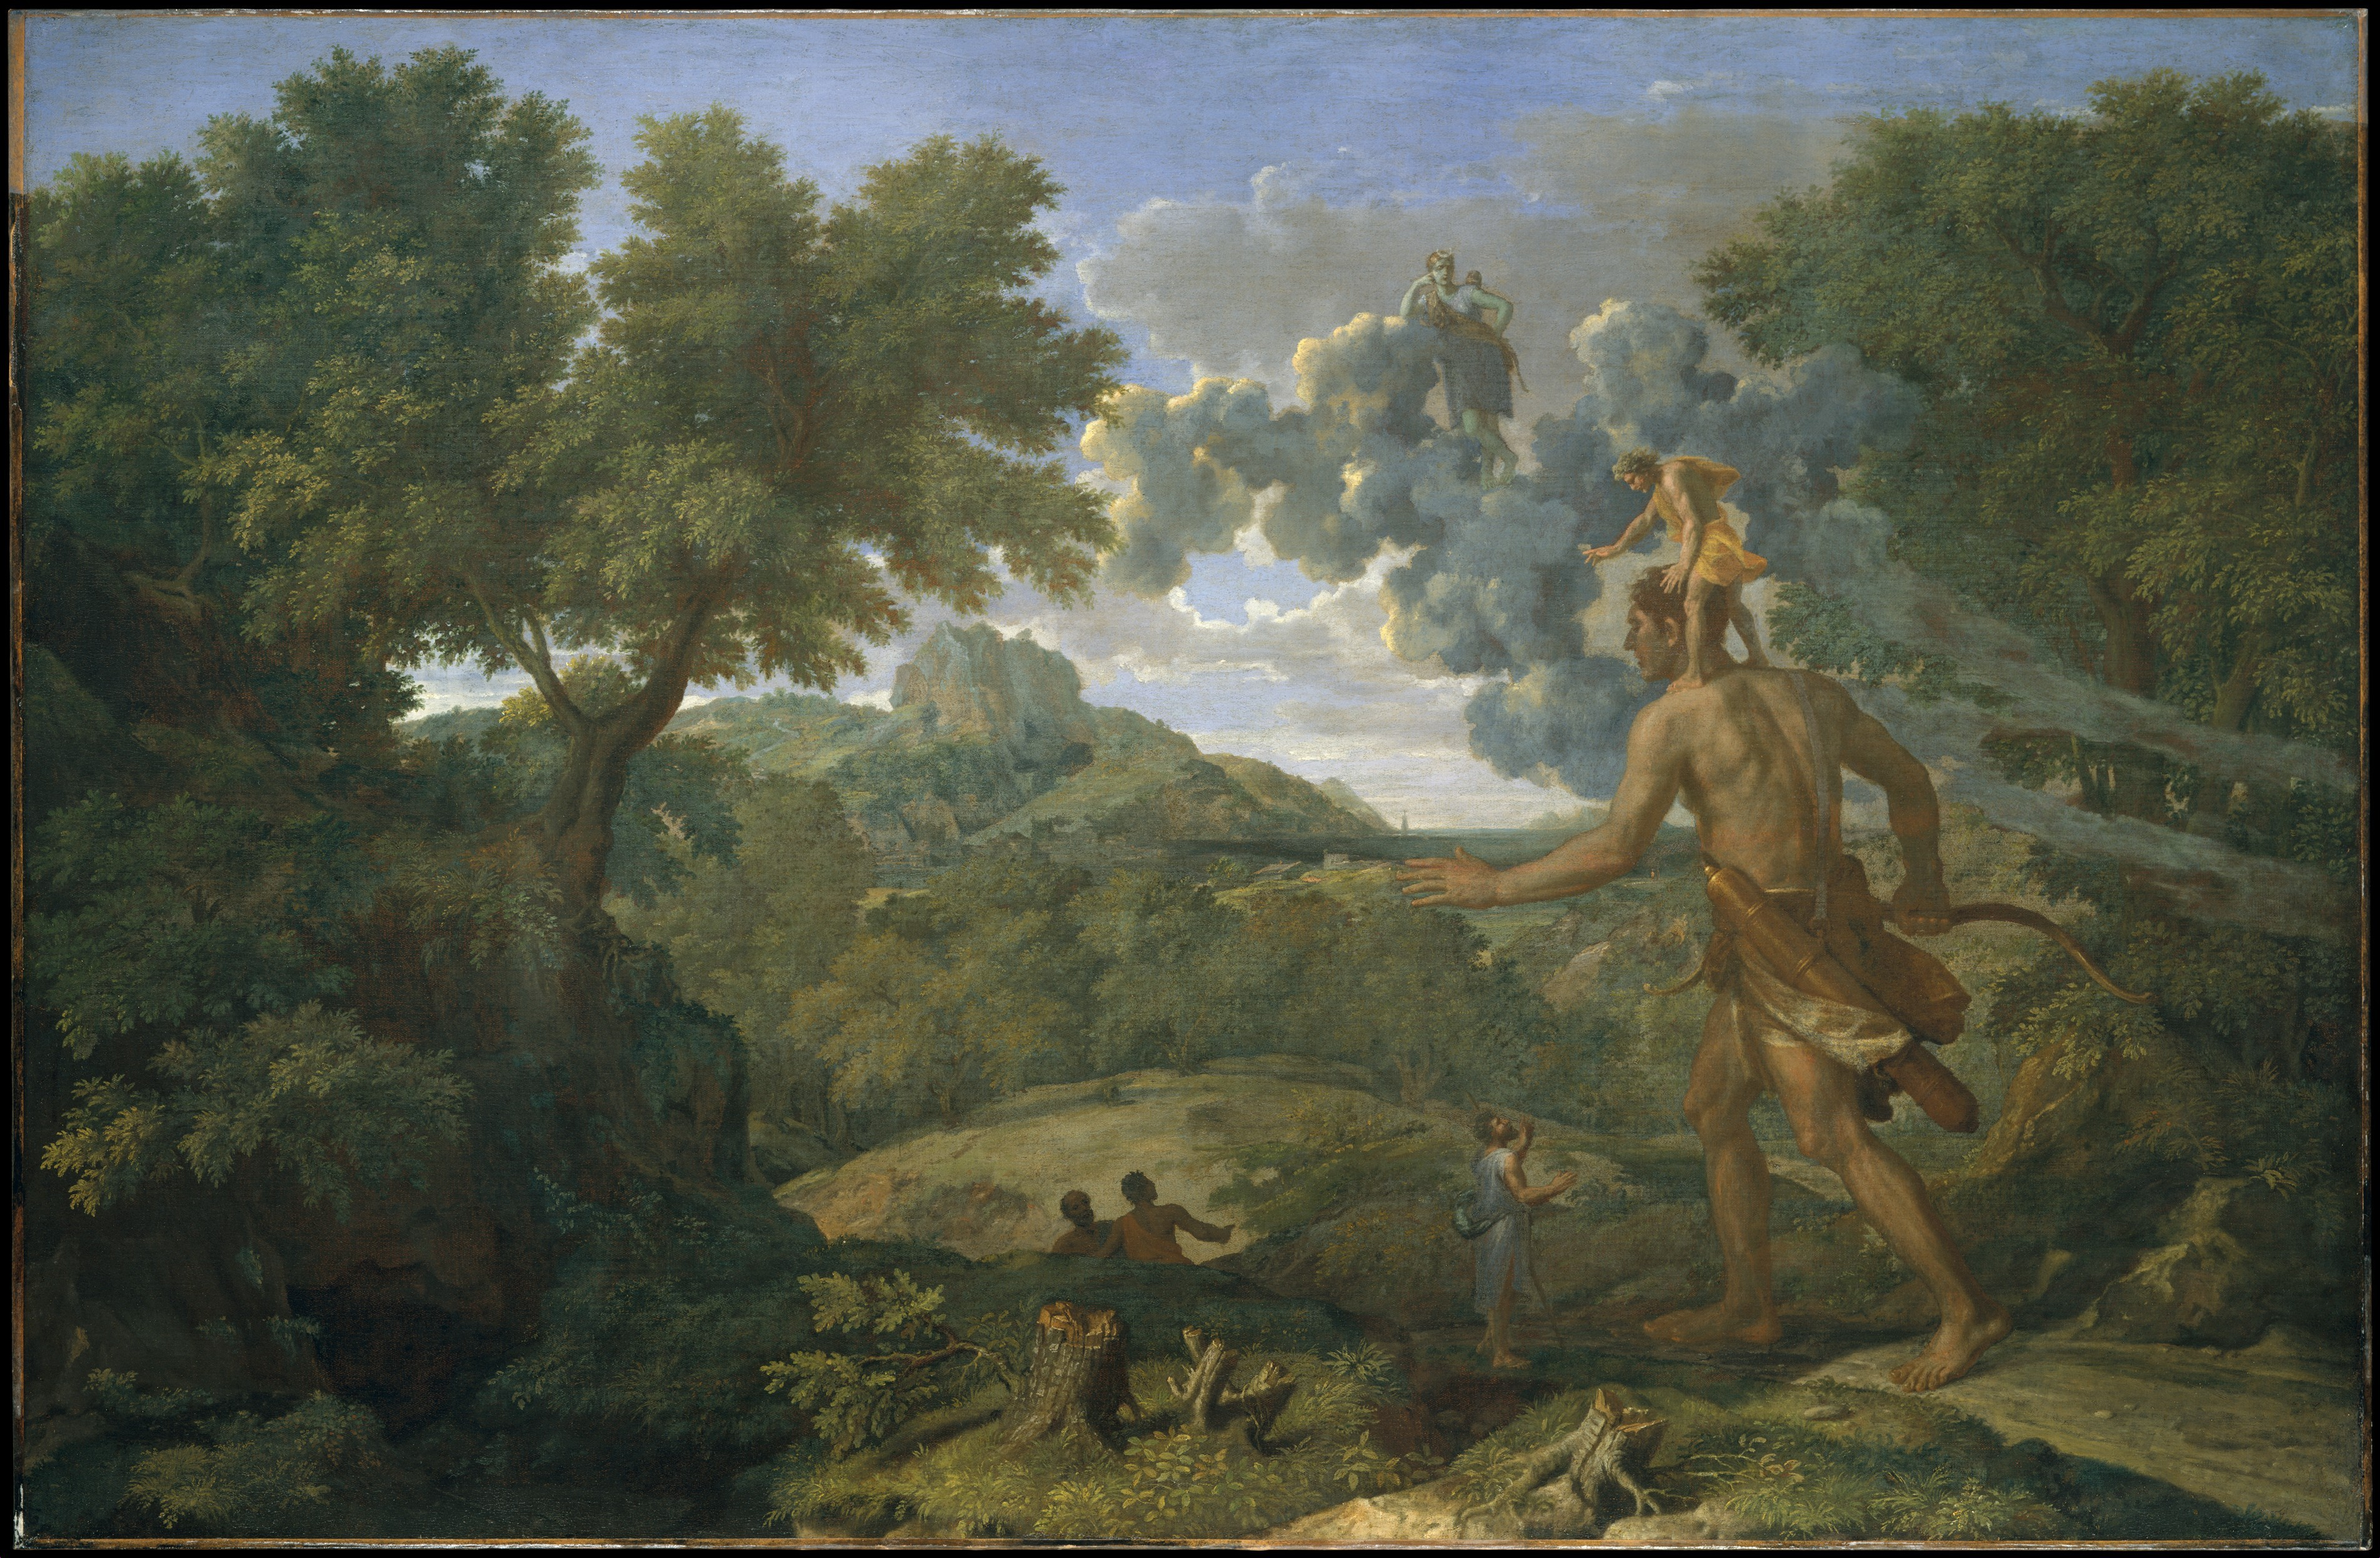 Image of Cedalion standing on the shoulders of Orion, Nicolas Poussin's Blind Orion Searching for the Rising Sun